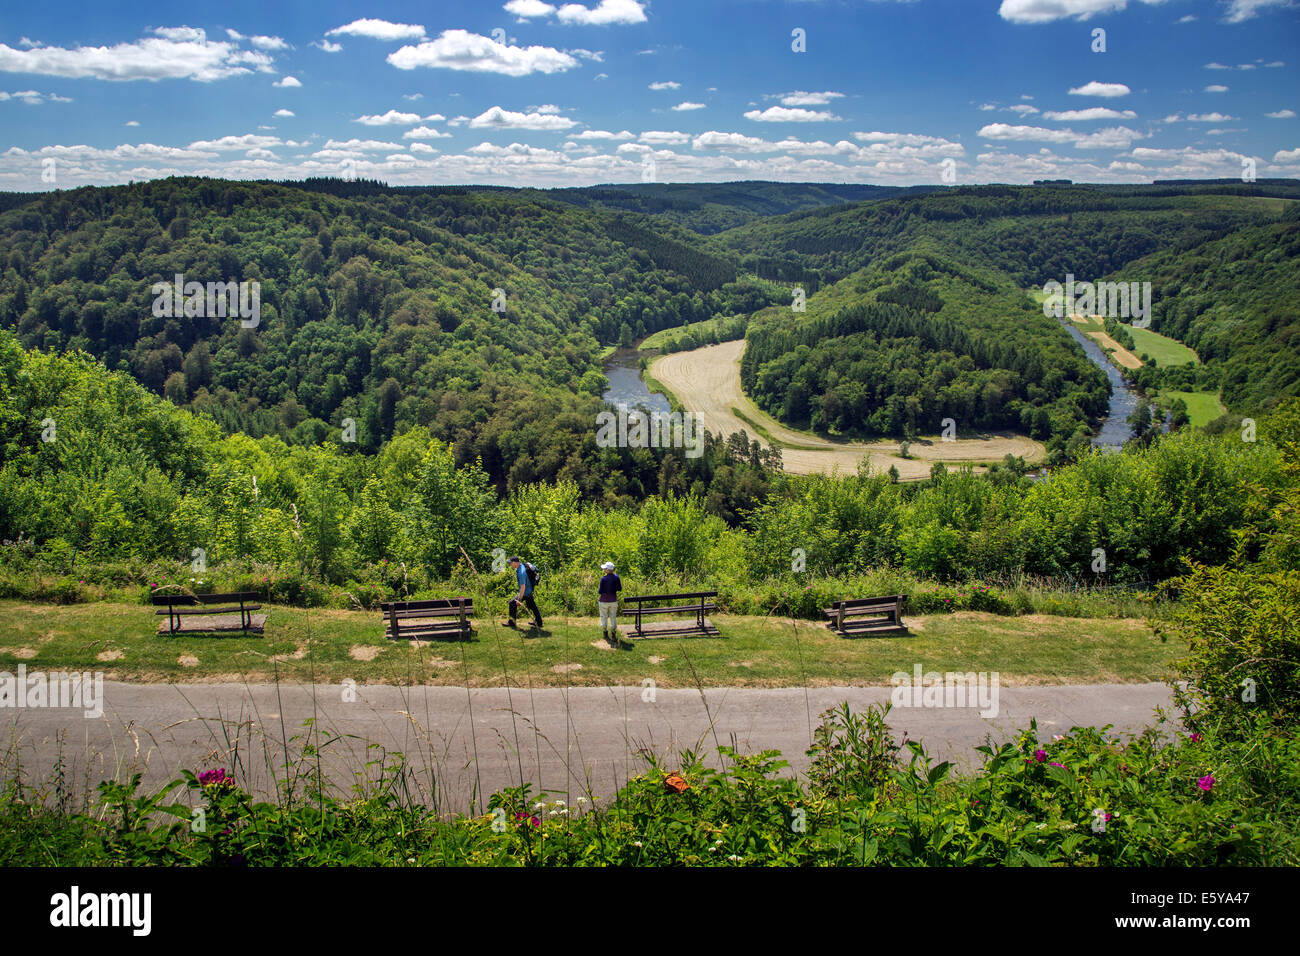 Tombeau du Géant, hill inside a meander of the river Semois at Botassart in the Belgian Ardennes, Belgium - Stock Image